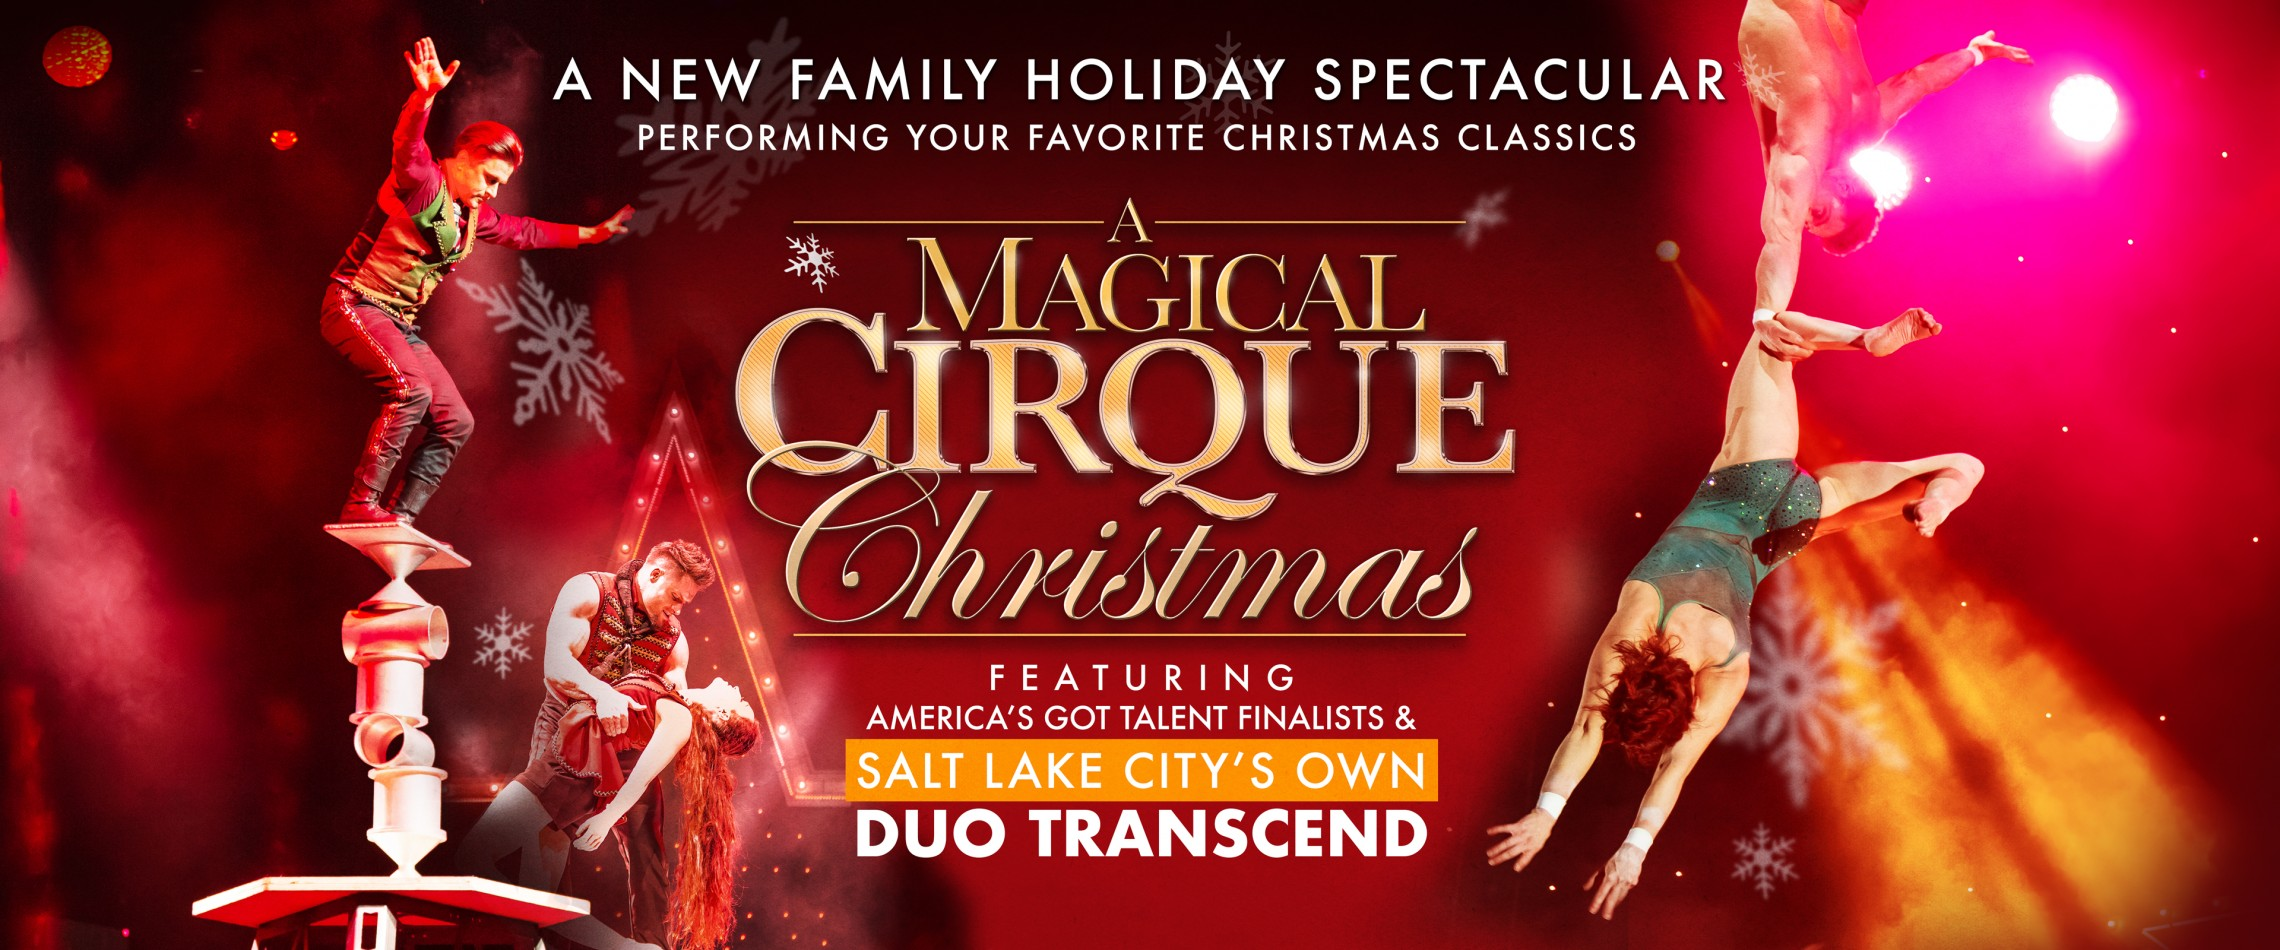 Cirque Christmas.A Magical Cirque Christmas Live At The Eccles